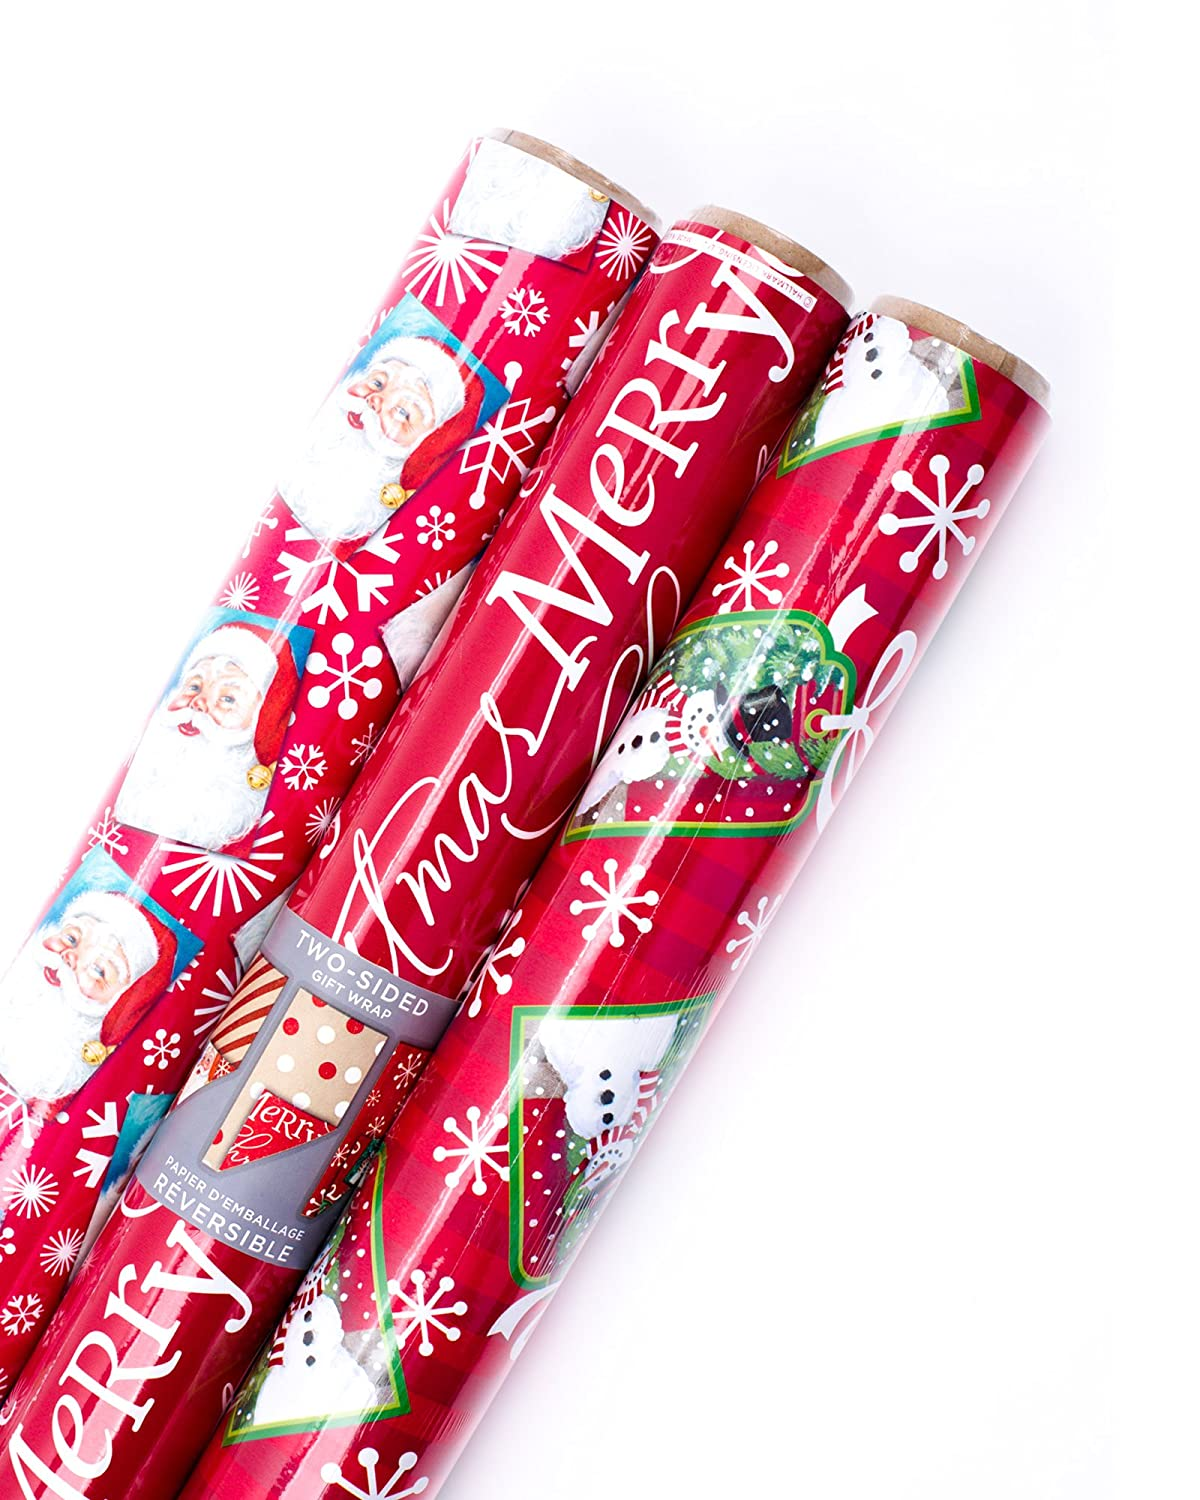 Hallmark Pulls the Worst Possible Hanukkah Wrapping Paper From Stores